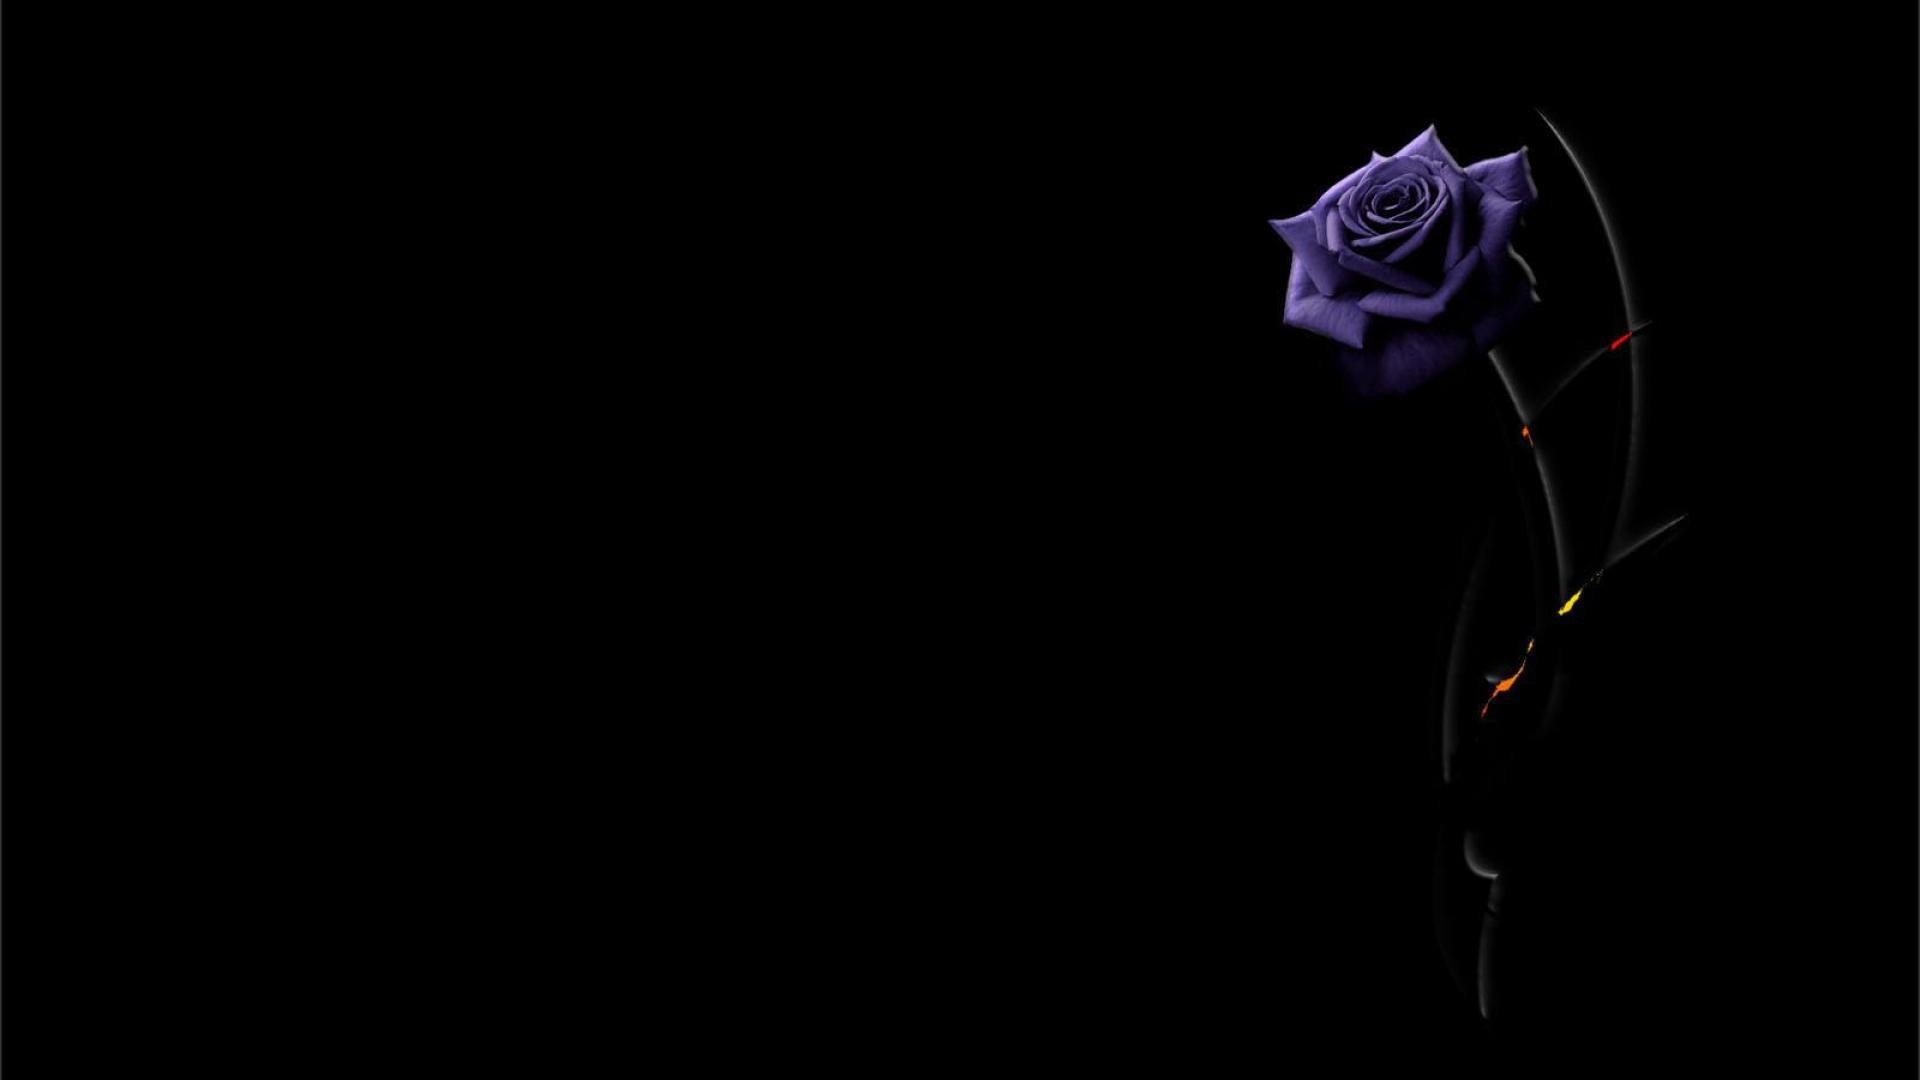 1920x1080  Beautiful purple rose on a black background wallpapers and images  .